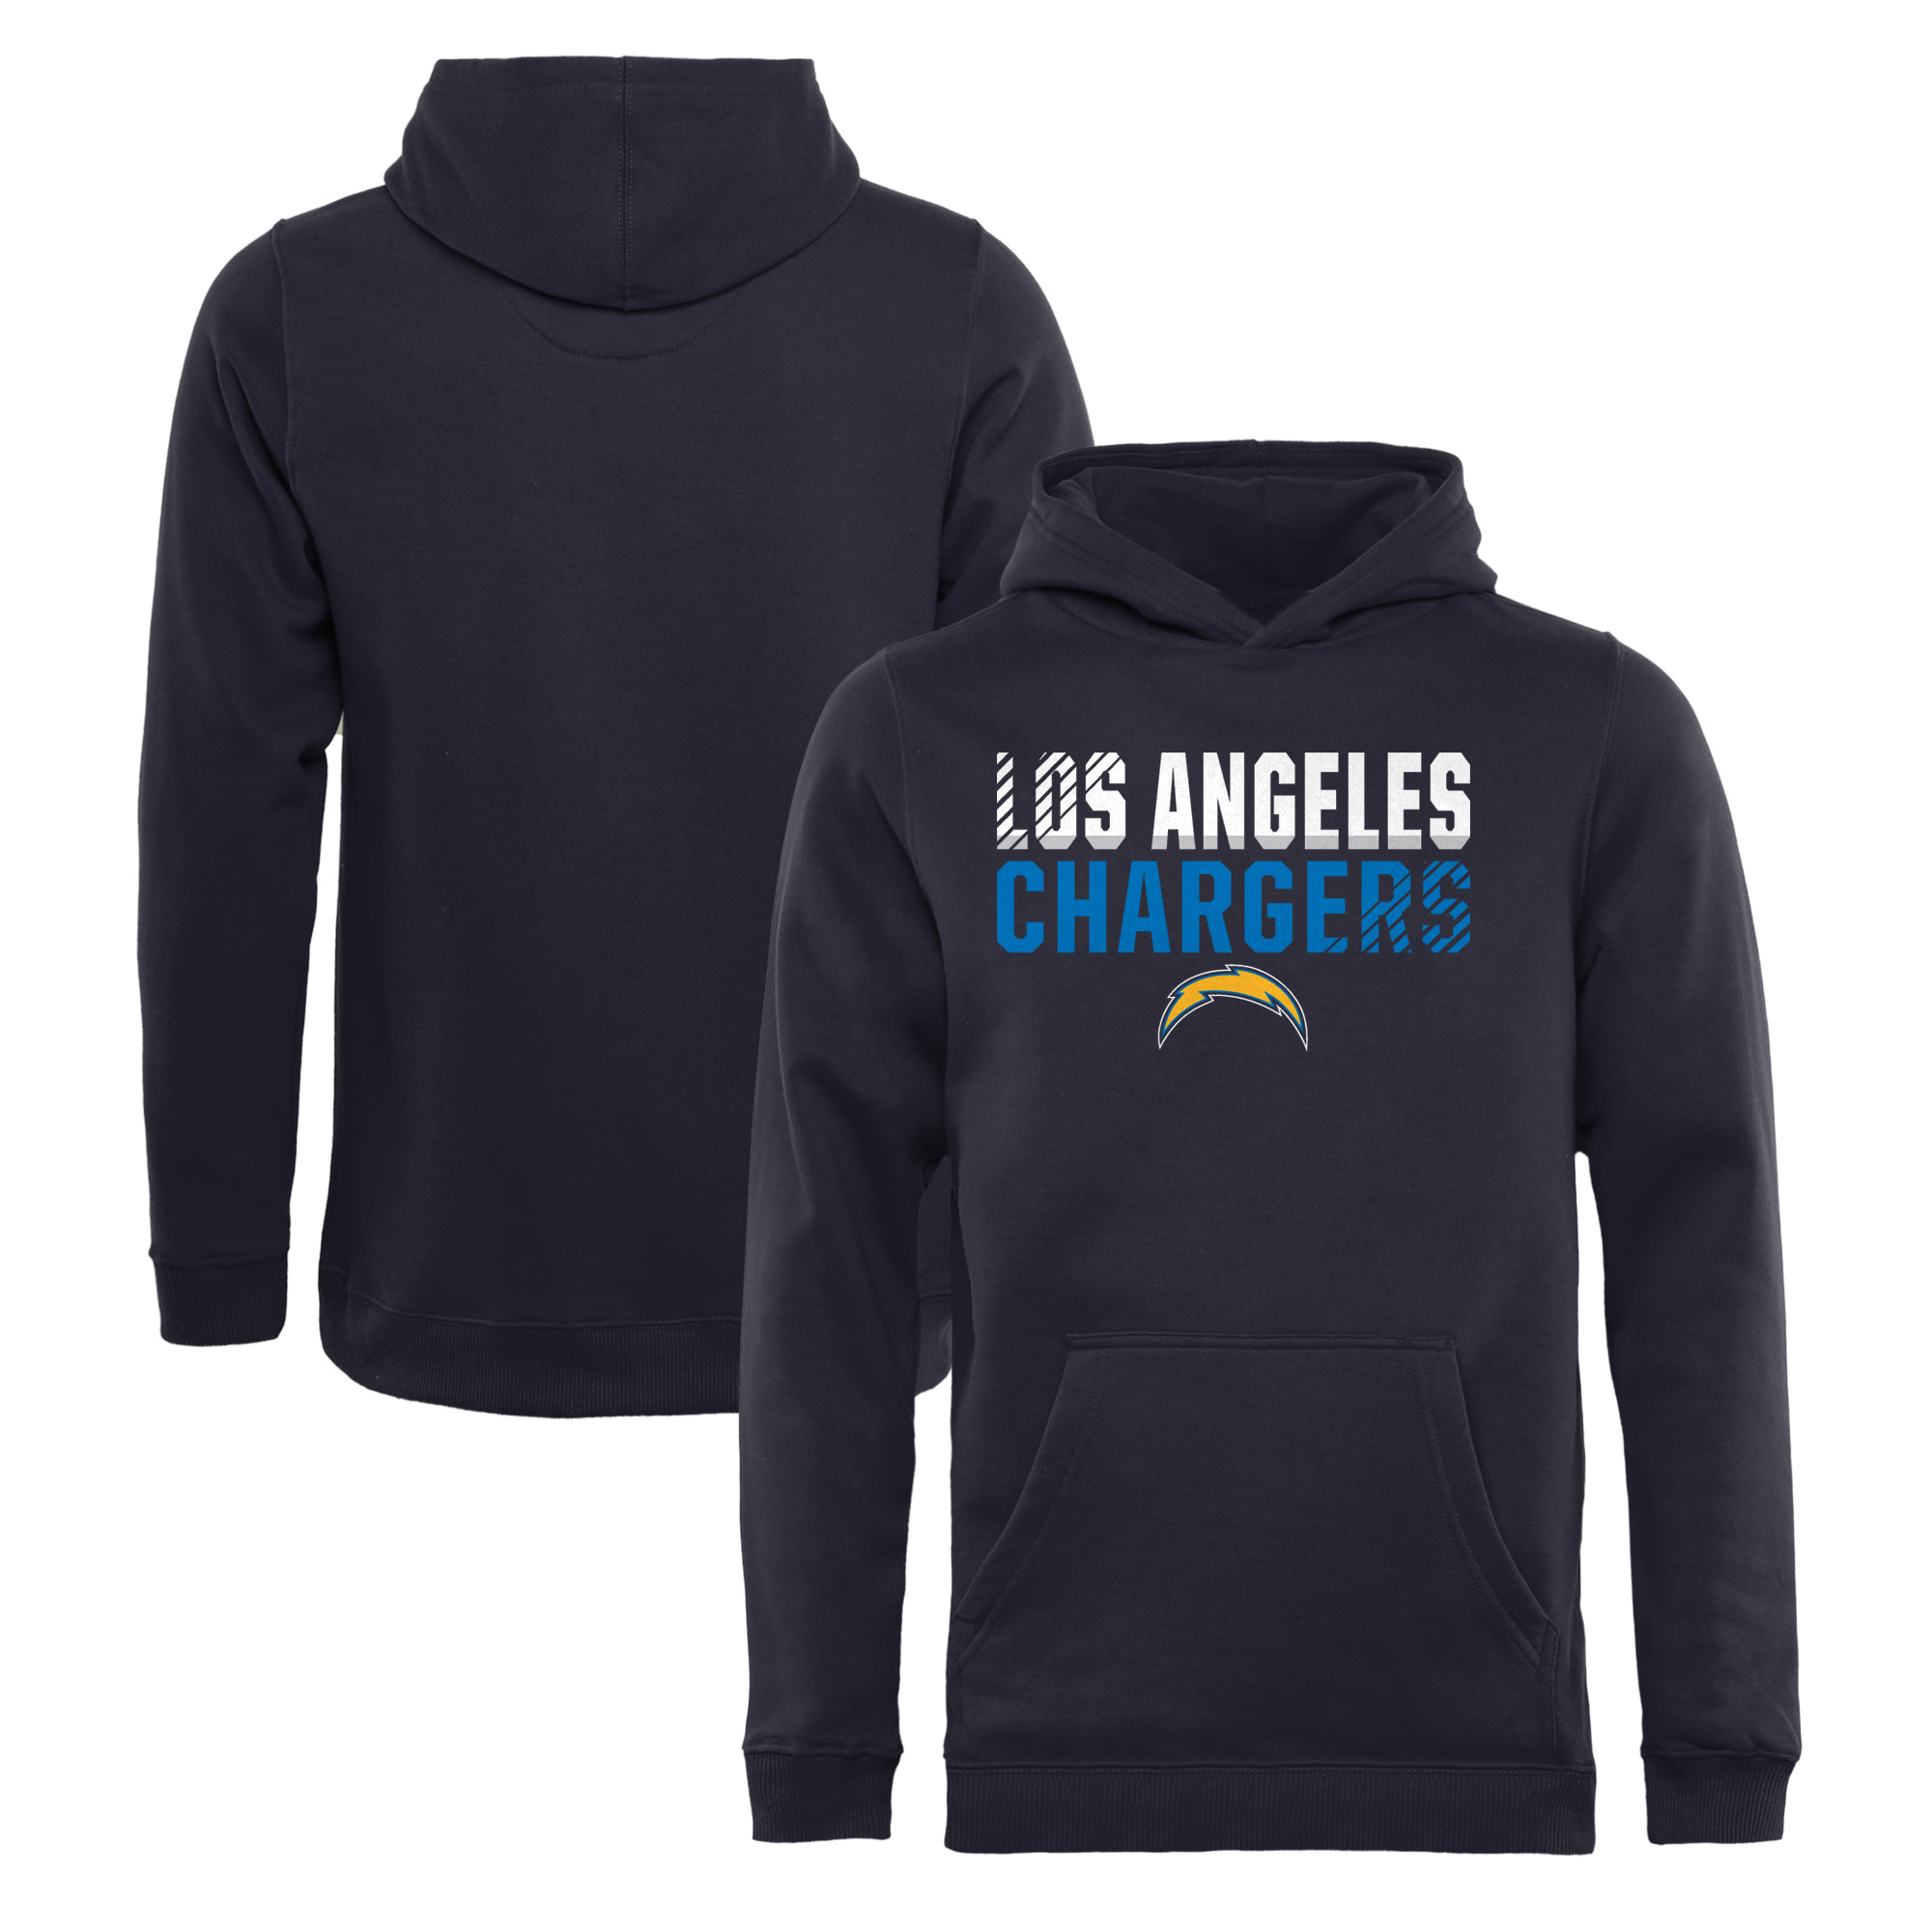 Los Angeles Chargers NFL Pro Line by Fanatics Branded Youth Iconic Collection Fade Out Pullover Hoodie - Navy